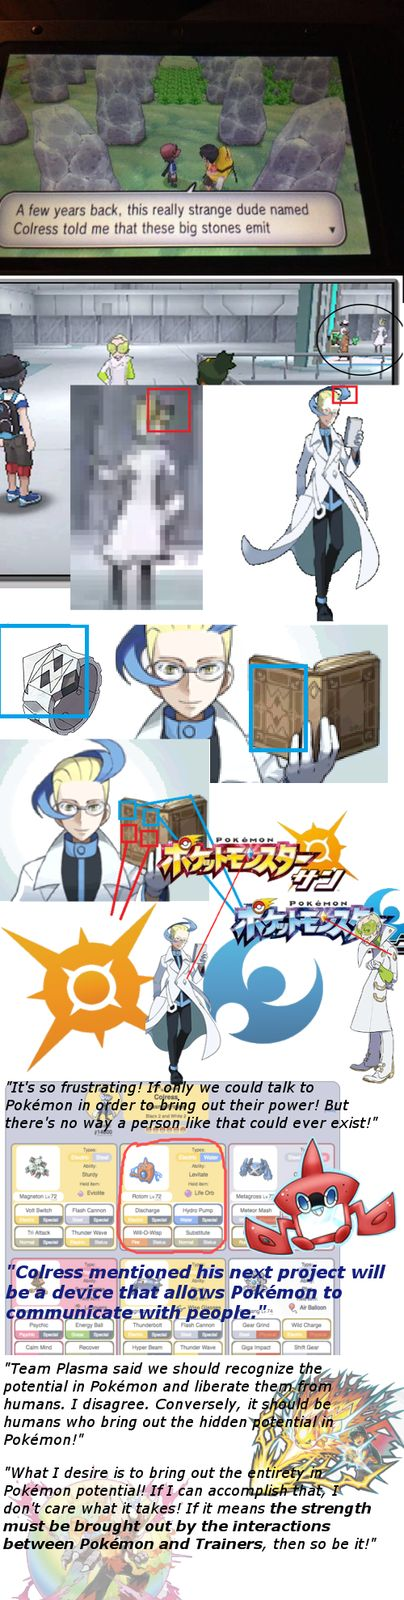 Not this guy....I feel like they're trying to hard to make people to like the Unova games more......I liked them but it felt like the ending kind of just dropped off a cliff. They reference Unova a lot in the past two games...